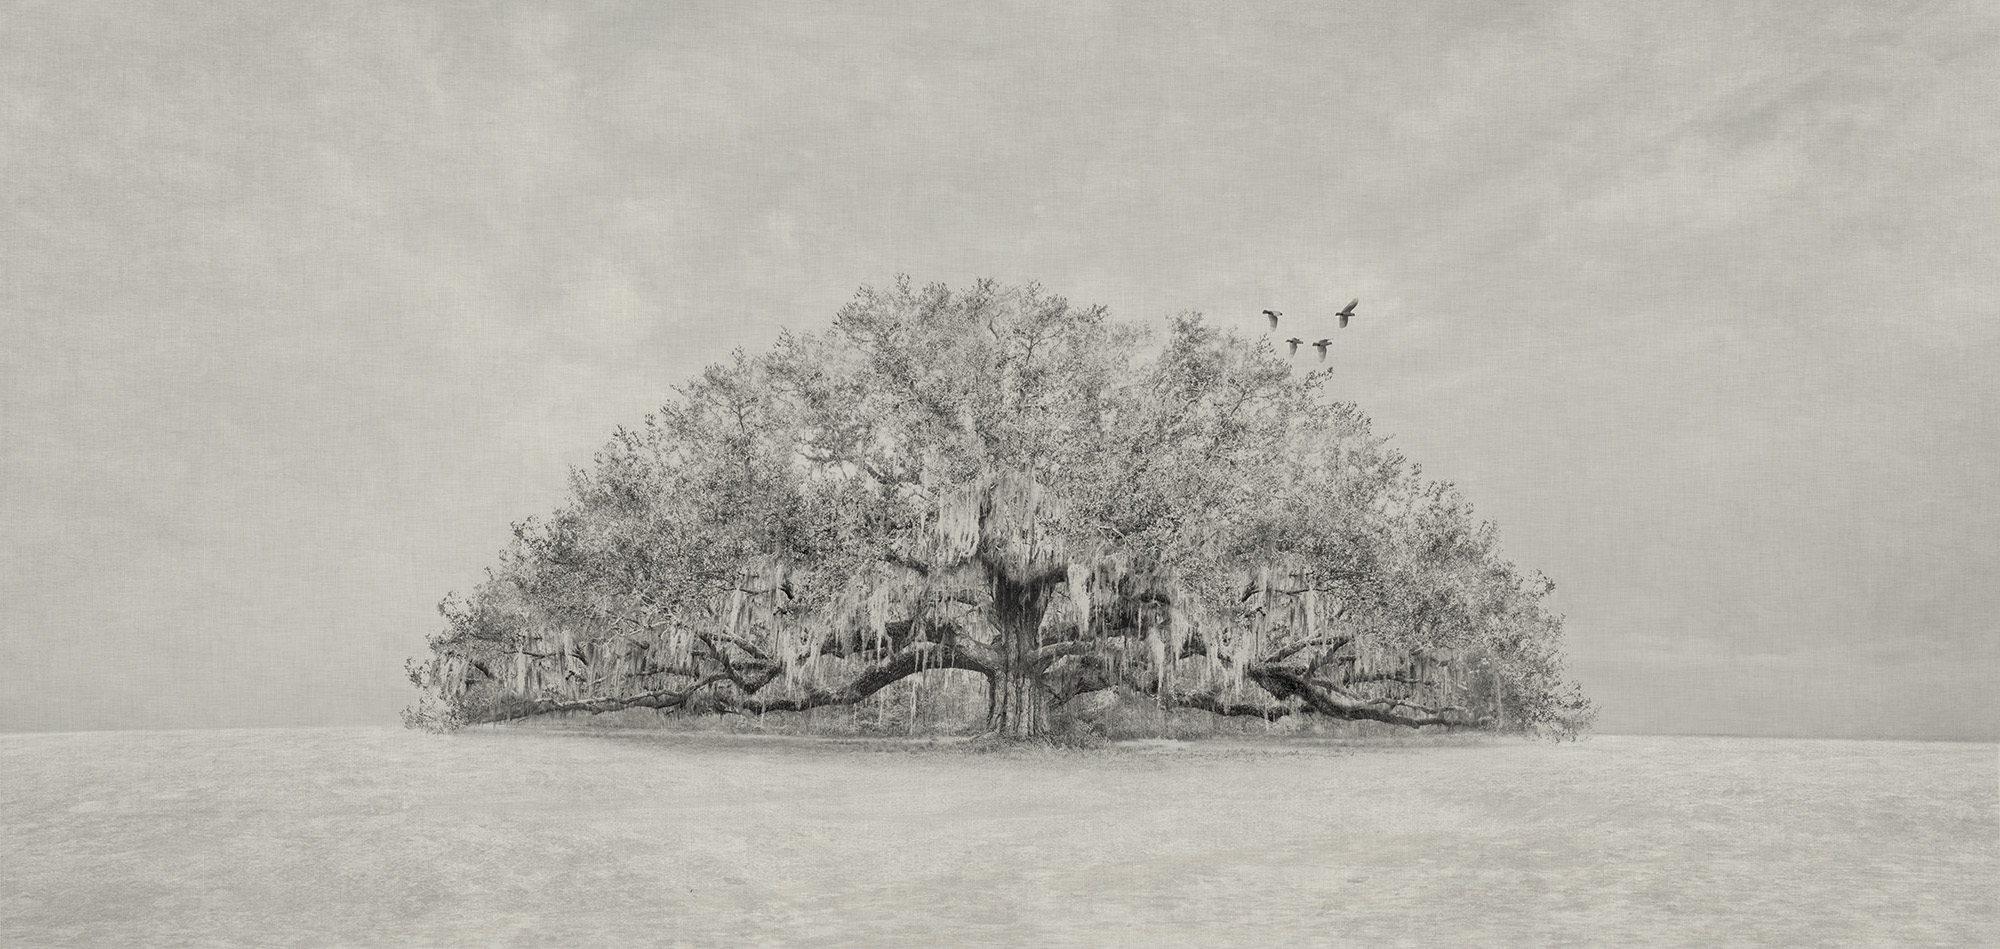 New 14 - Lonely Tree and Birds